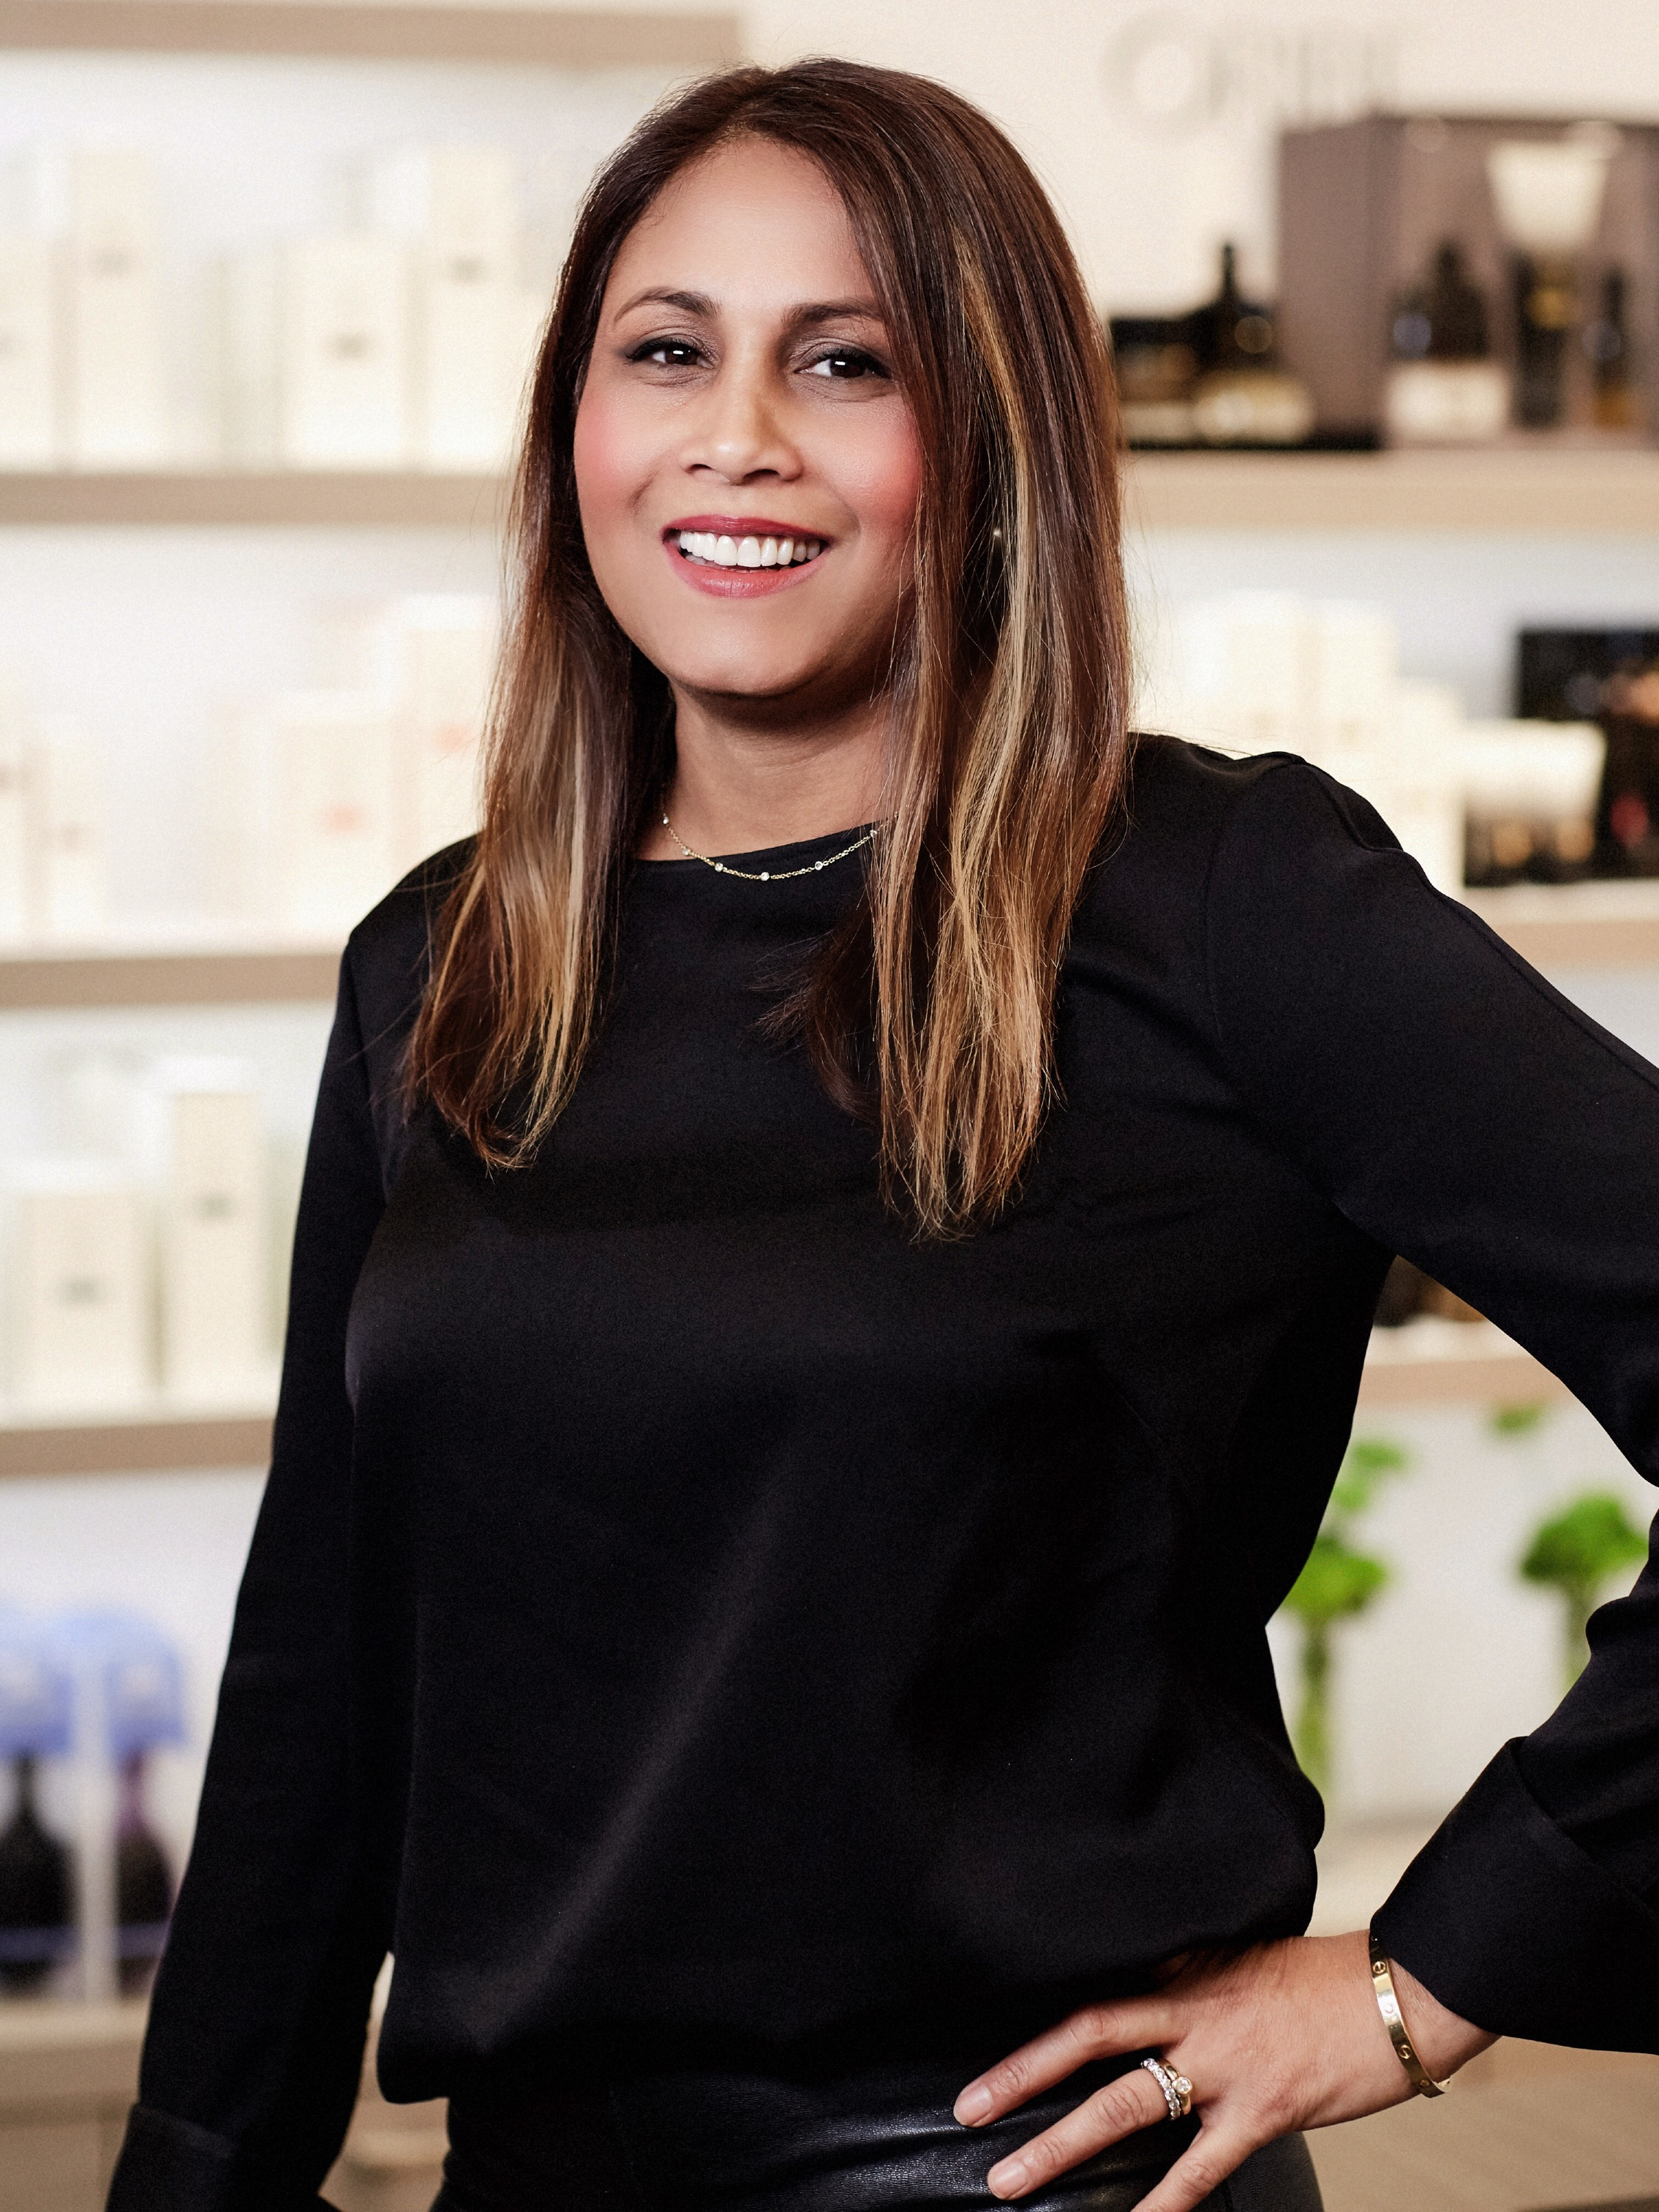 """TARA   Featured in  Allure  as one of """"New York City's Best Kept Secrets,"""" Tara is a master colorist and senior educator at Butterfly Studio Salon. Tara has worked at Butterfly Studio Salon for 18 years and has worked in the beauty industry for 22. Known for her less-is-more aesthetic, Tara loves color transformation and guiding her clients in the right direction, whether that's natural highlights or color correction. She is also a master in Japanese Hair Straightening, having served as a Milbon educator for 15 years. She loves offering this service to transform hair texture into a silky, and shiny finish and clients have reported post-service that the Japanese straightening treatment has changed their lives, making their hair more manageable.   @tarasookdeocolorist"""